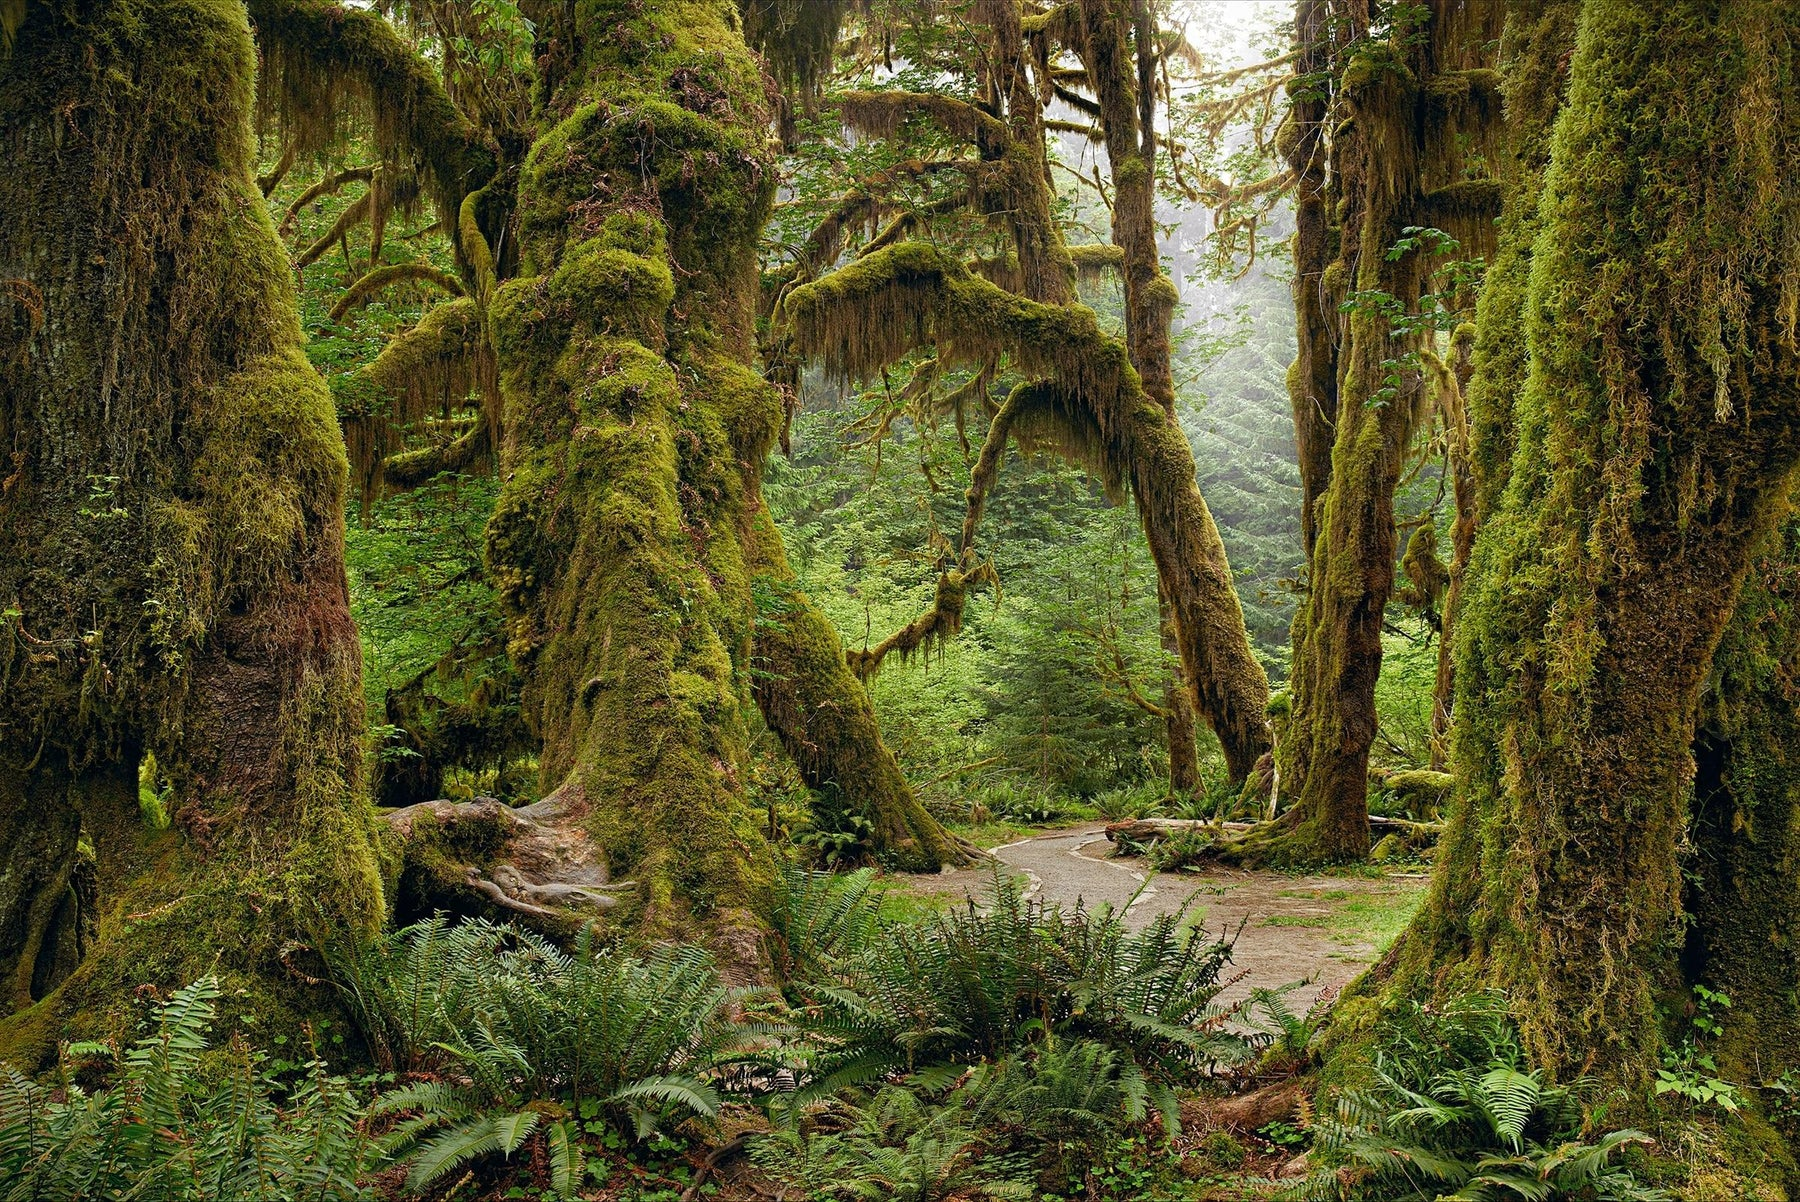 Dirt trail running through the moss covered forest in Olympic National Park Washington